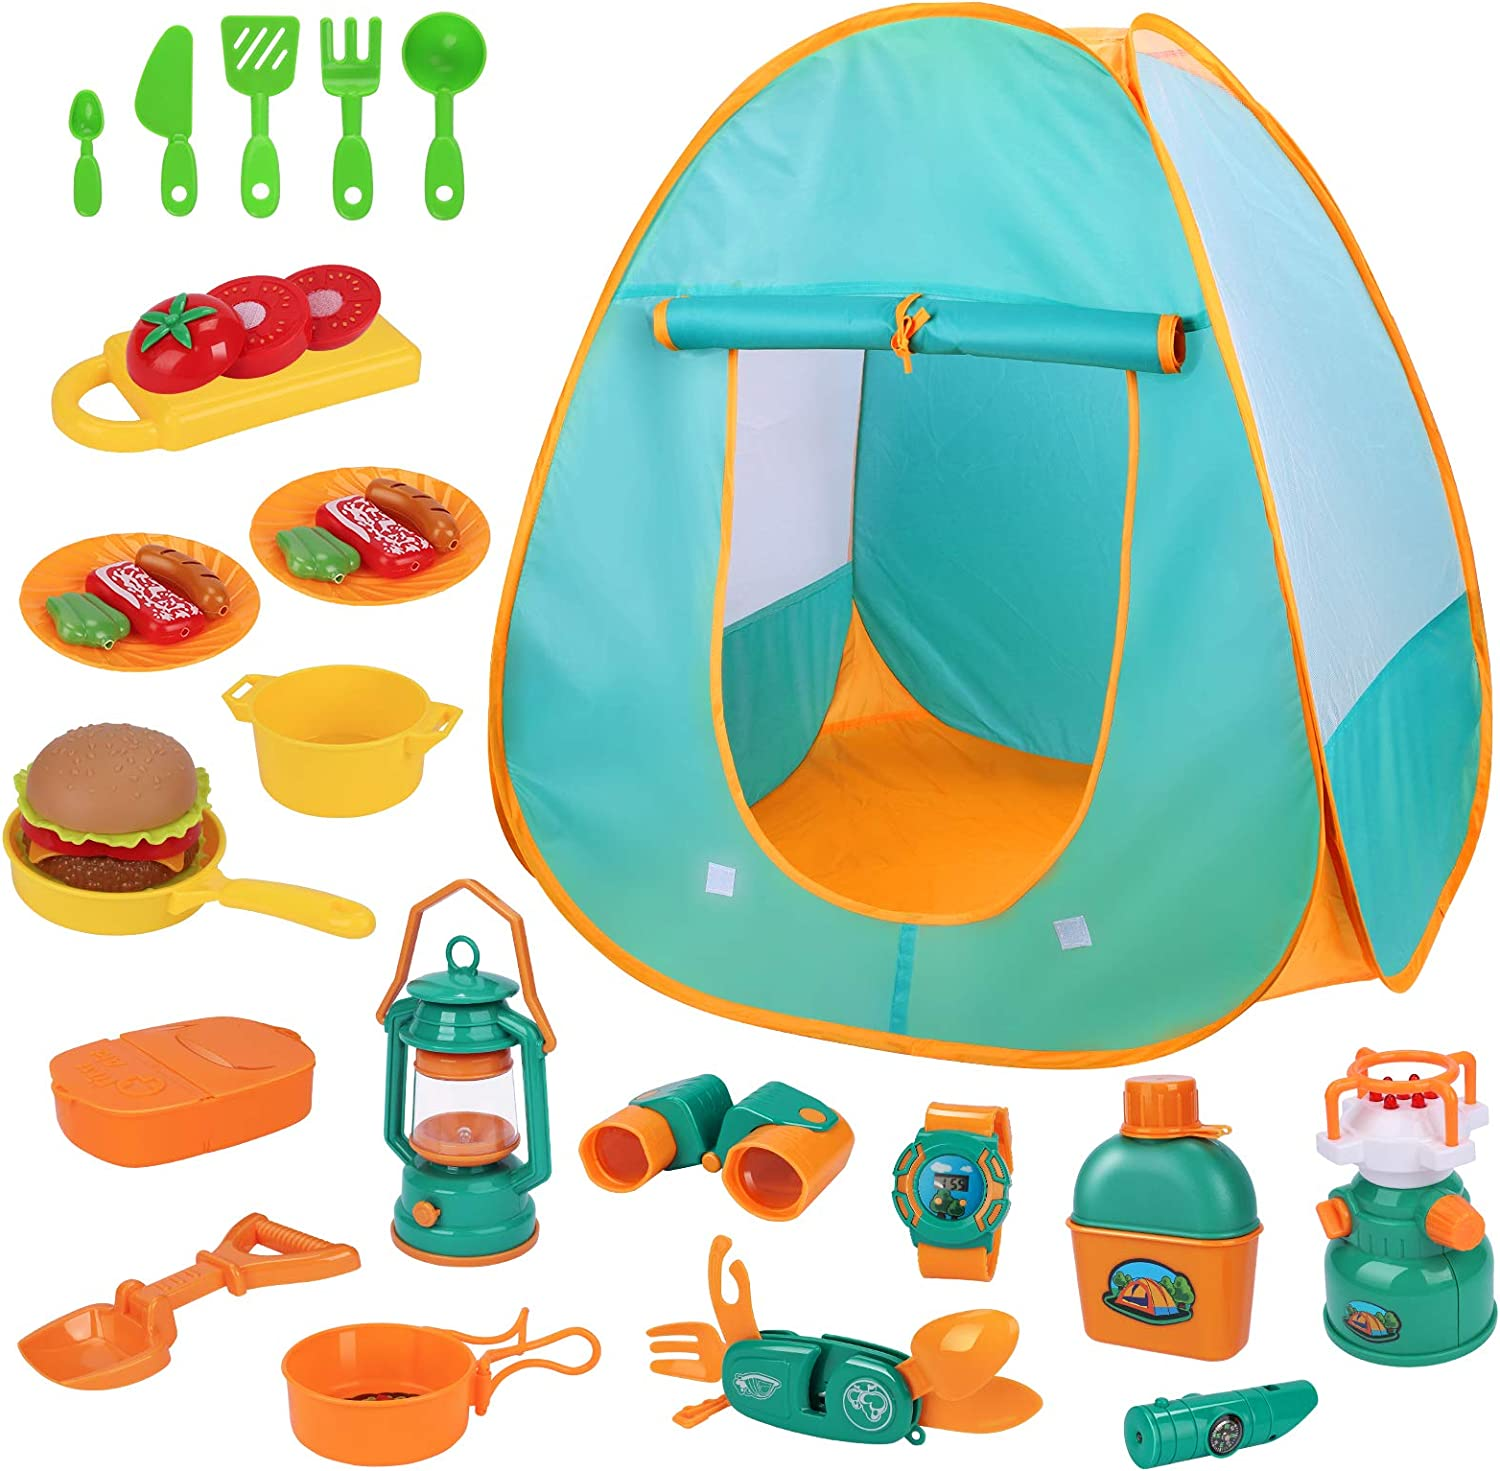 iYoYo Kids Camping Play Tent Set 30pcs Kids Camping Gear Tools with Play Kitchen Food Set, Indoor Outdoor Pretend Play Toys for Kids Toddler Boys Girls Birthday